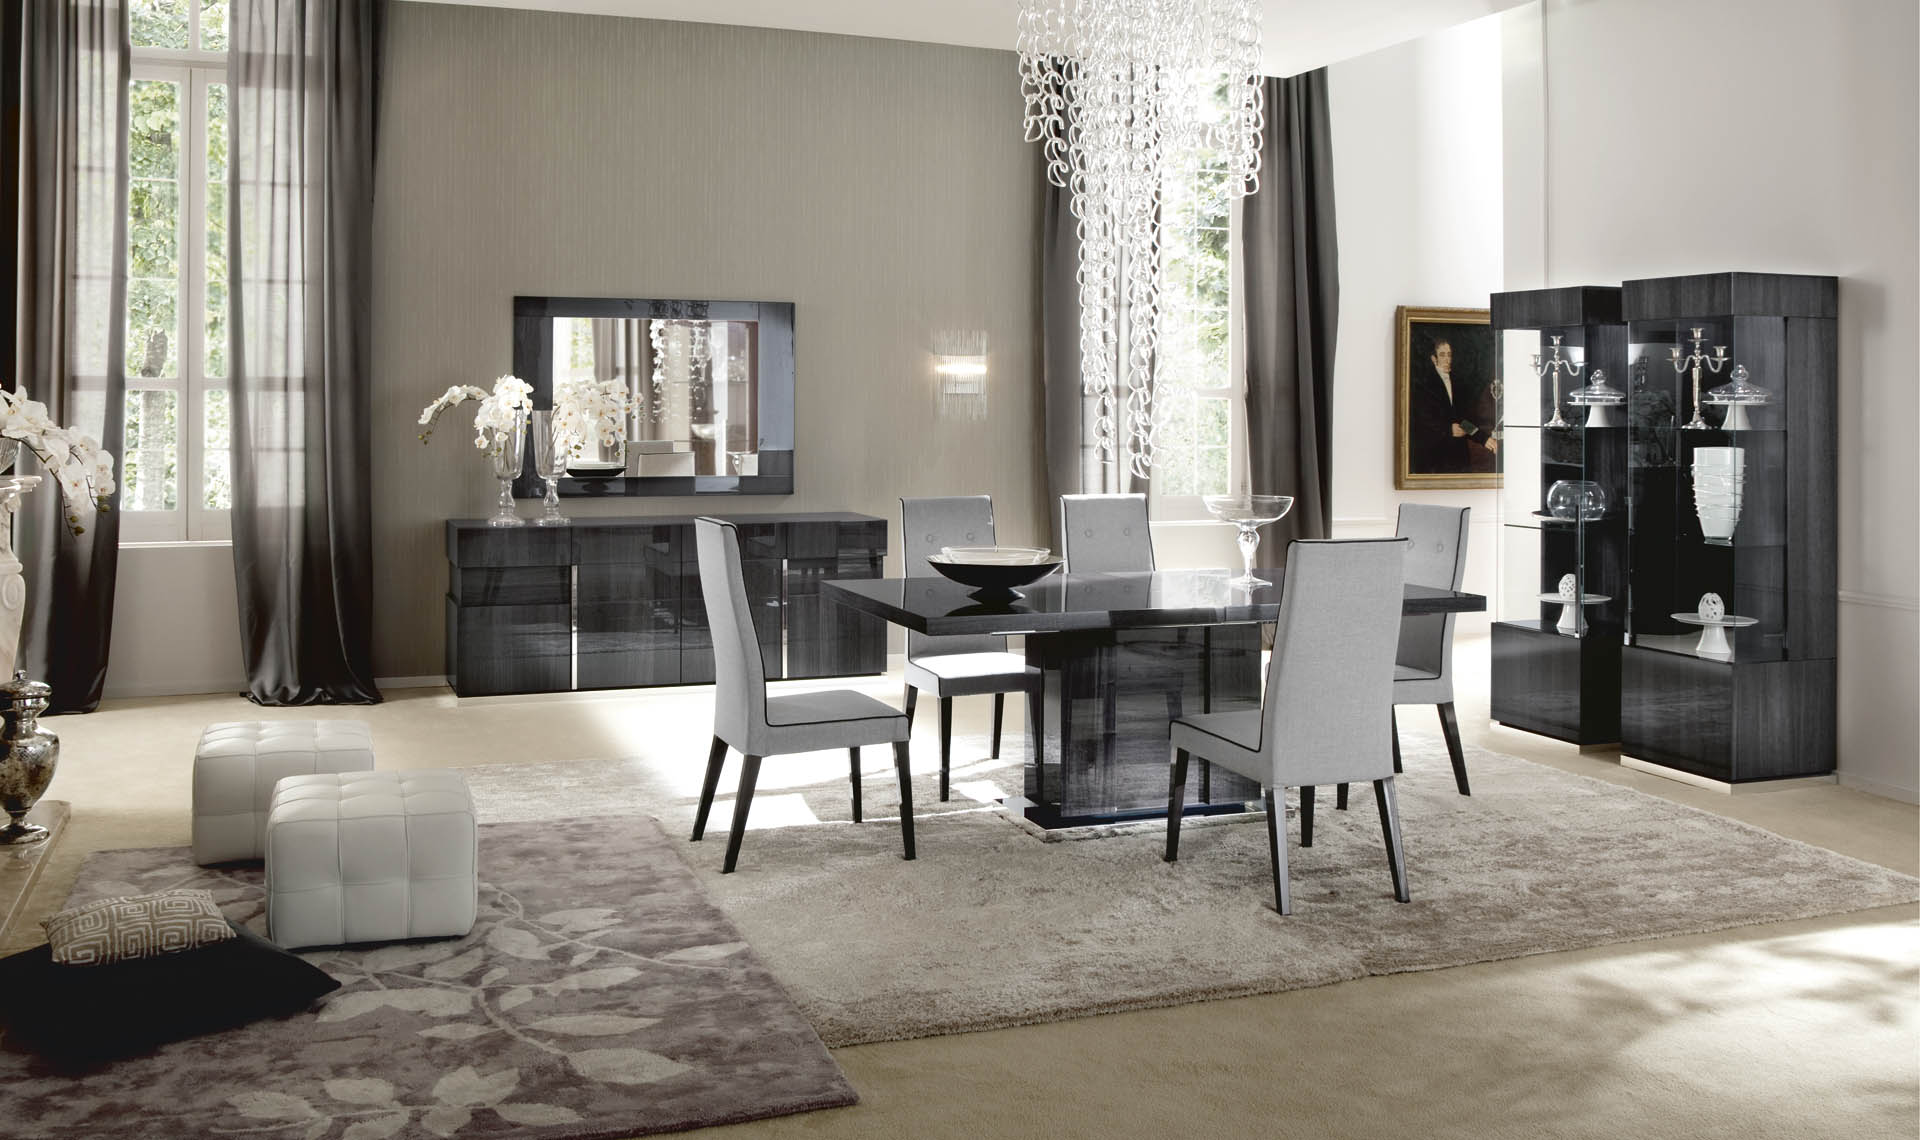 Montecarlo Dining Room Set 2 overview 2